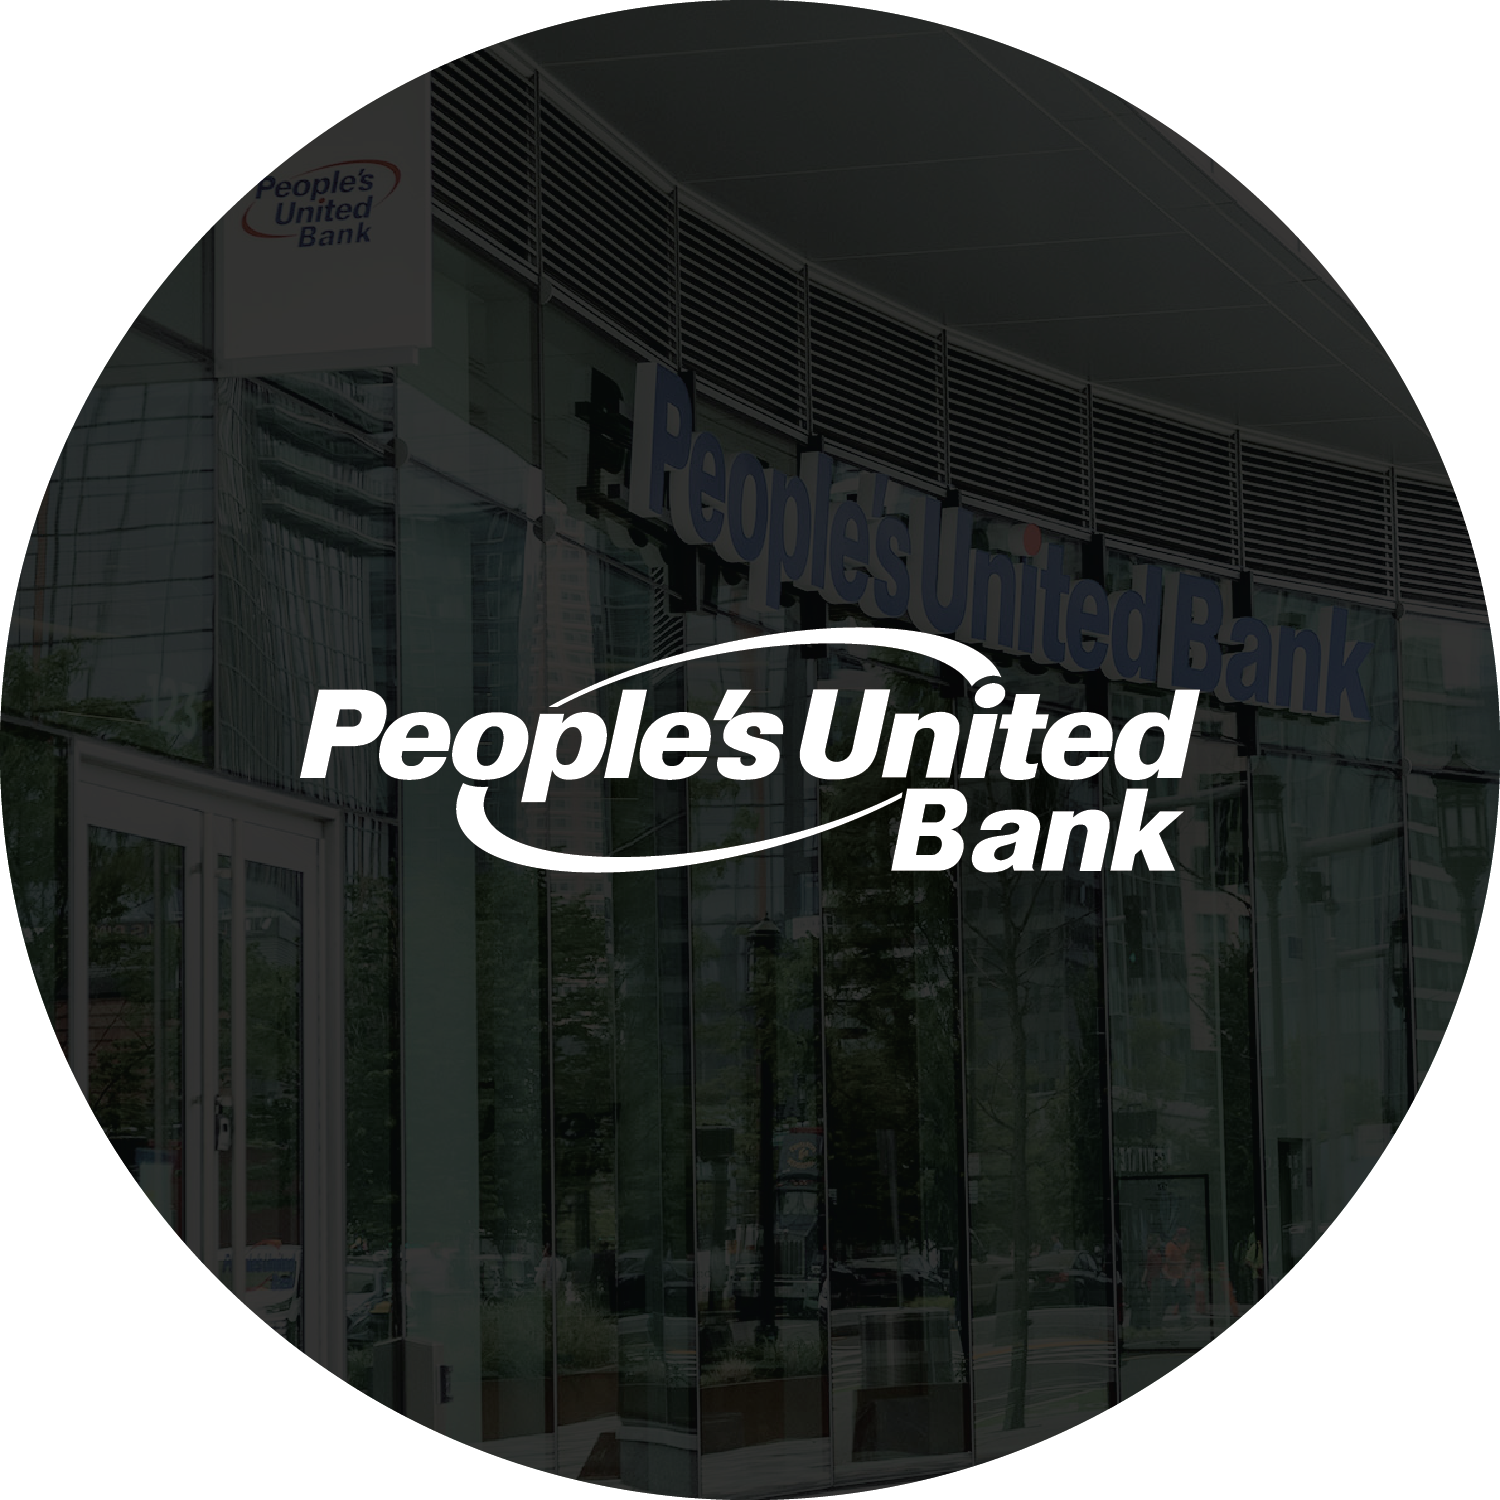 Peoples United Bank-01.png